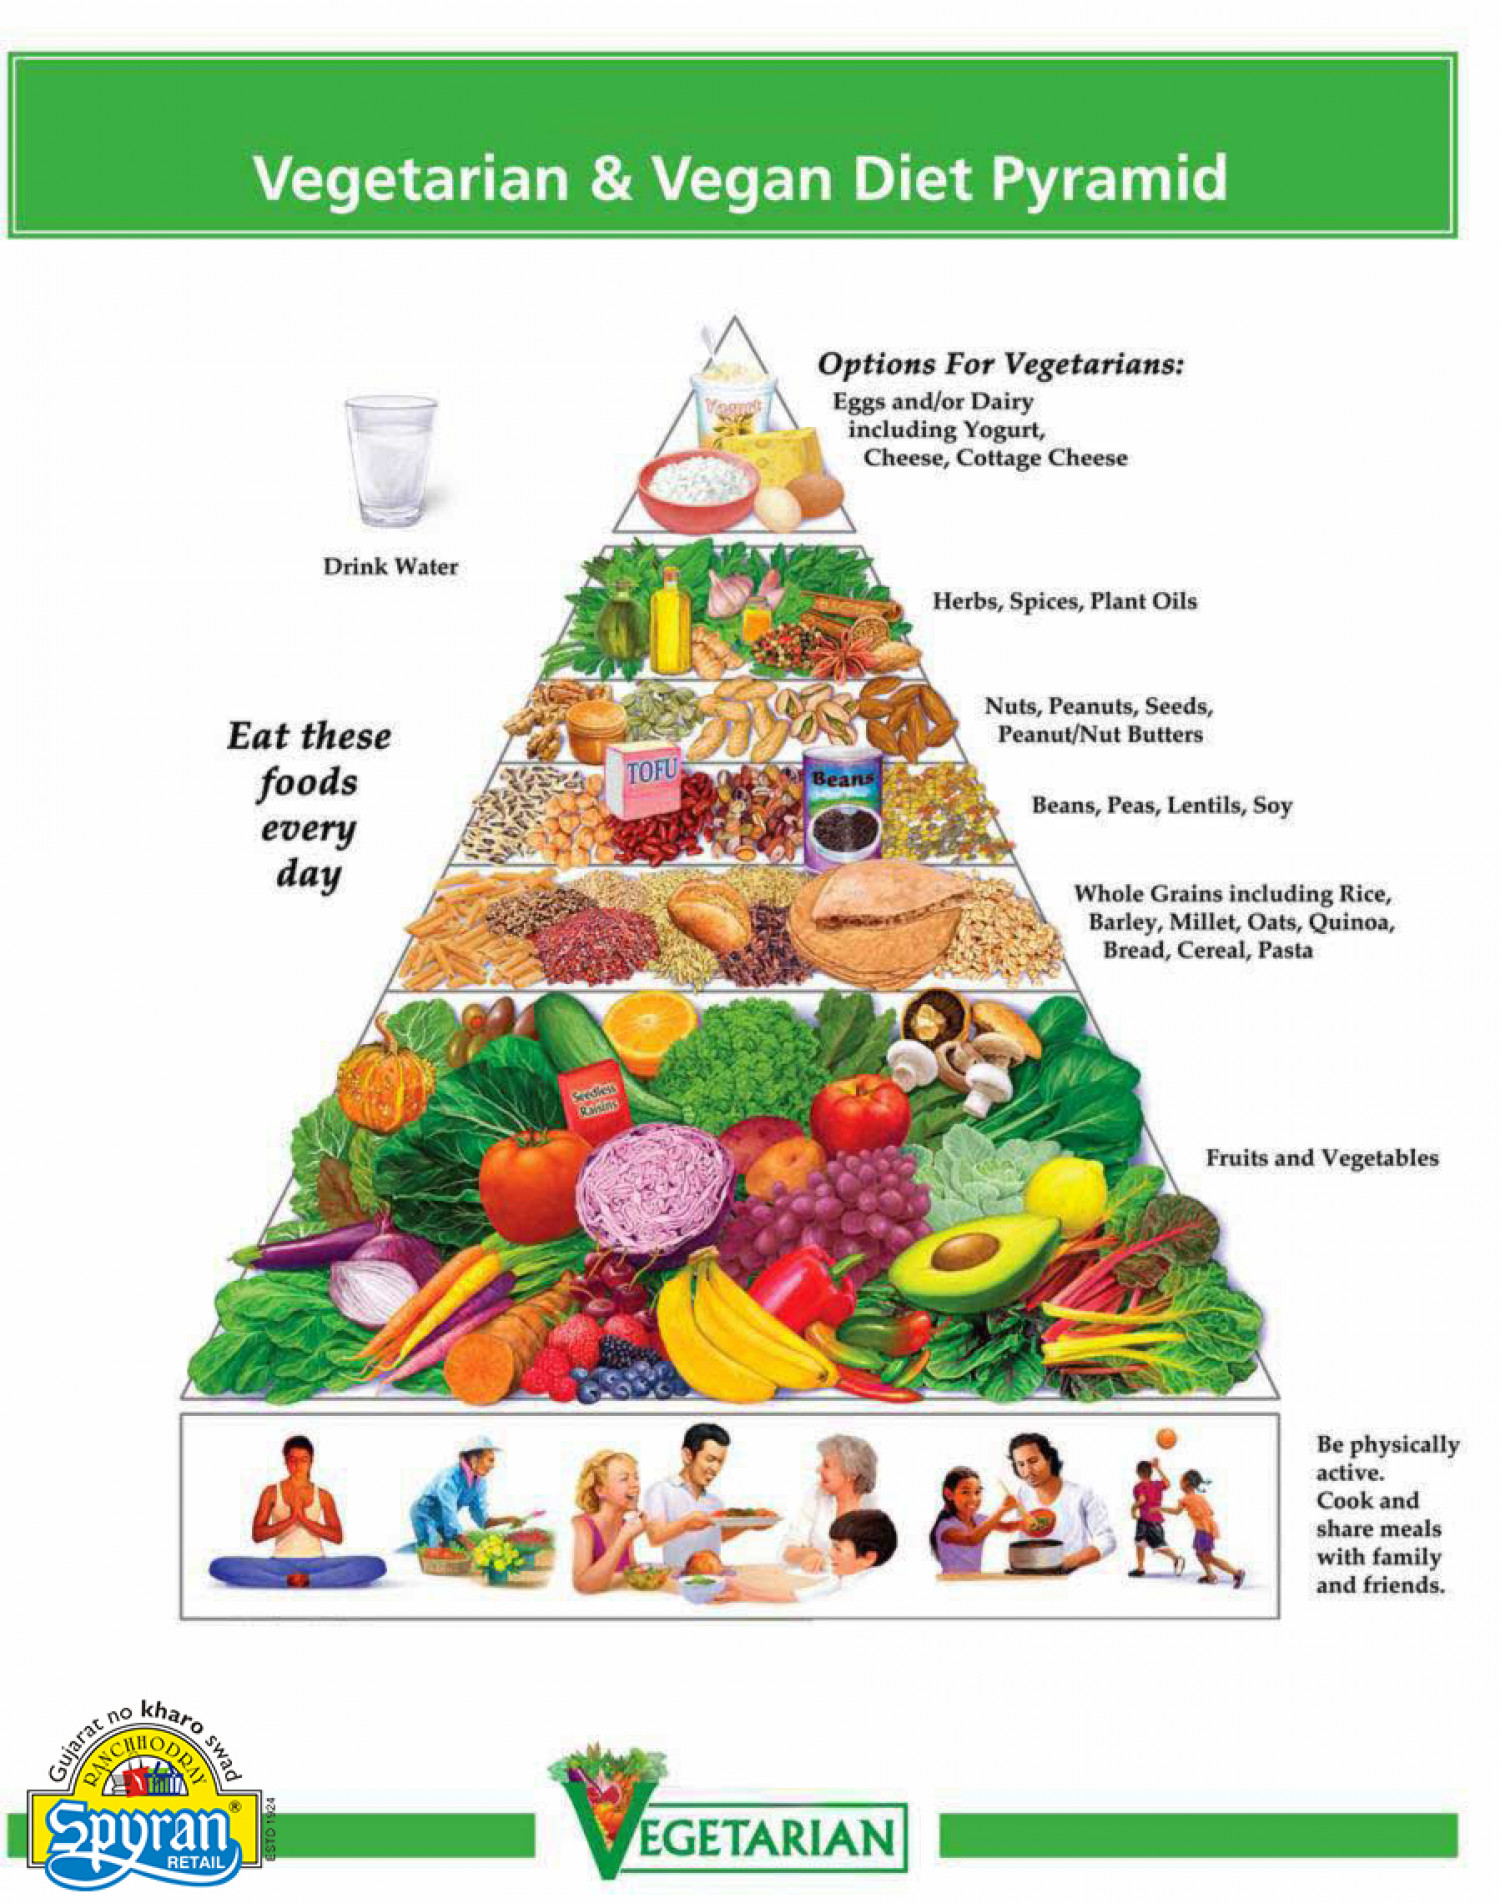 Vegetarian & Vegan Diet Pyramid Infographic